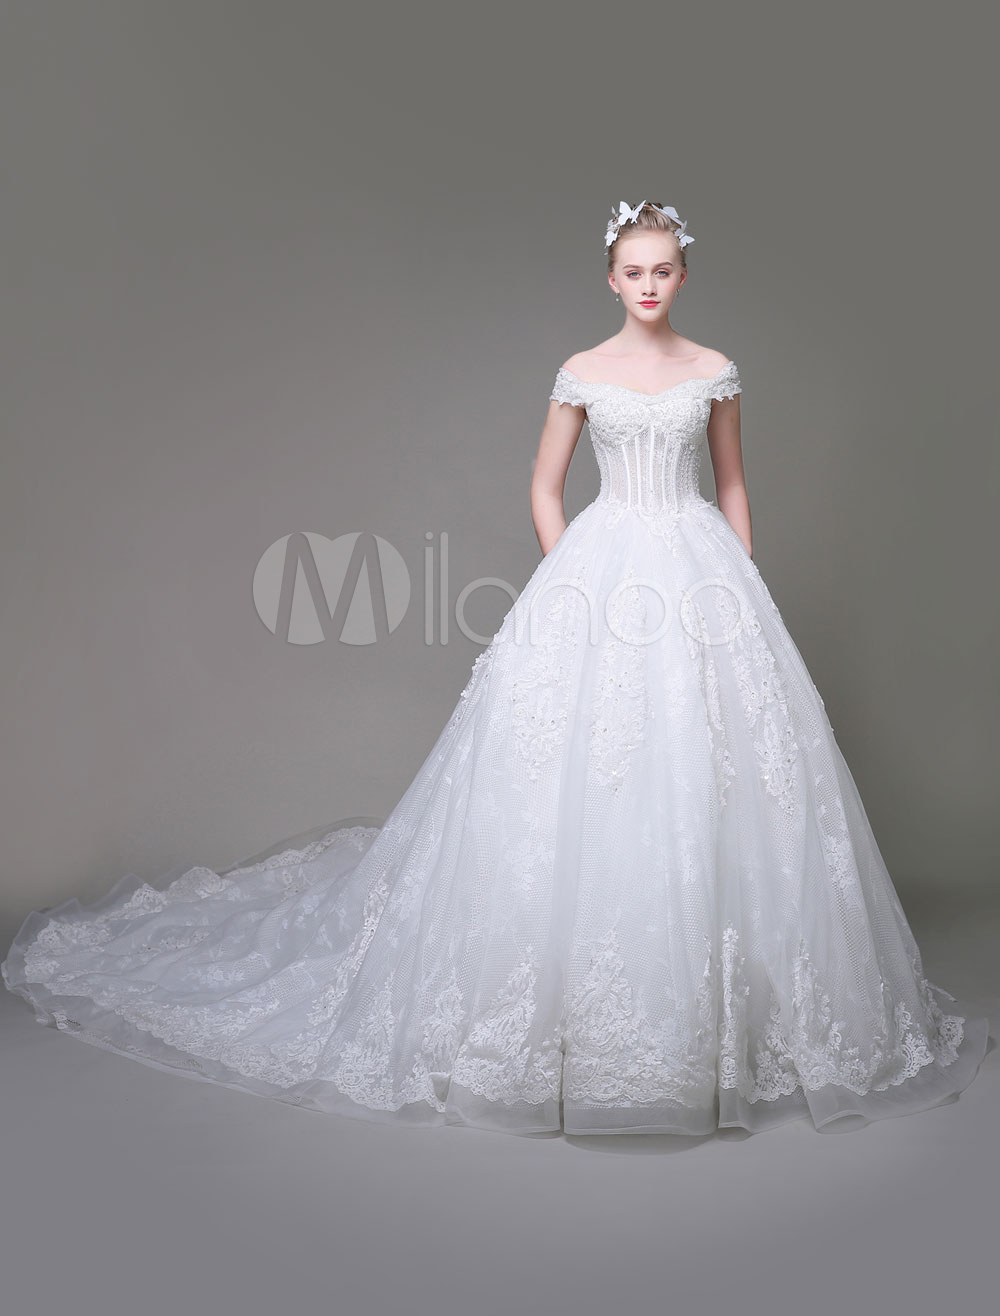 d0ee384895e Luxury Wedding Dresses Princess Ball Gown Bridal Dress Off The Shoulder  Lace Applique White Boned Wedding ...